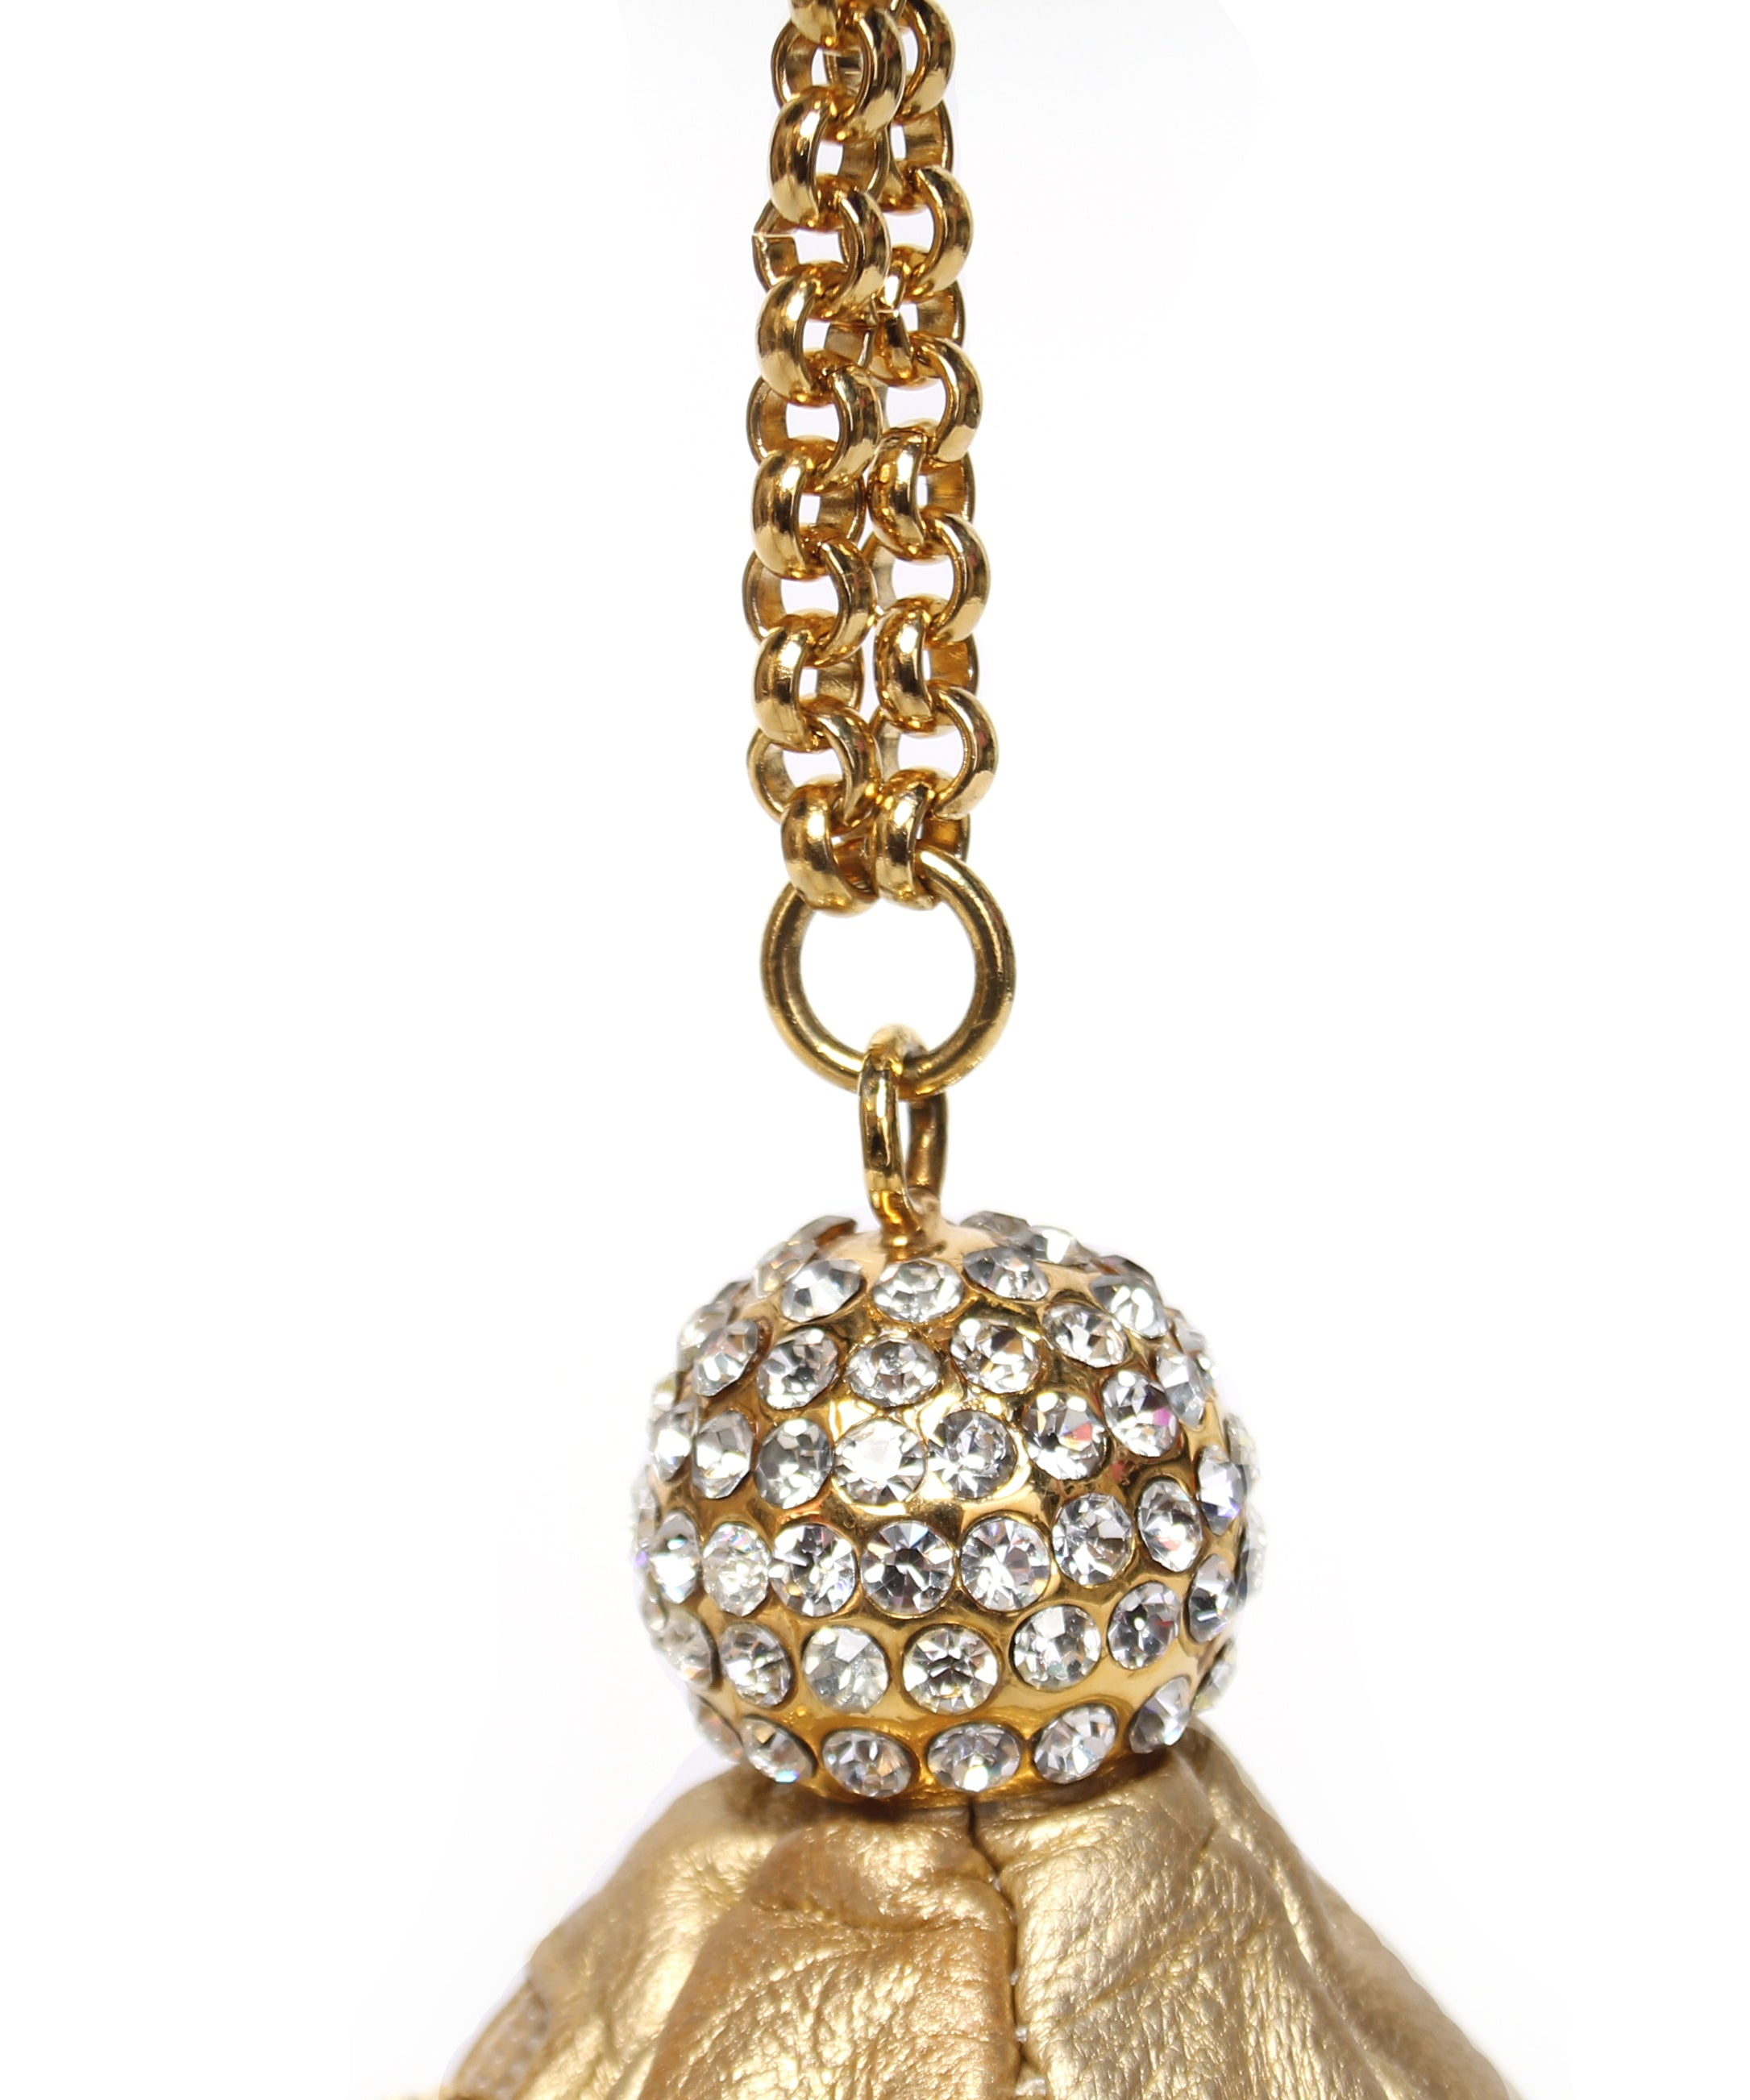 Metallic Gold Leather and Pave Rhinestones Balloon Shaped Purse - C.Madeleine's